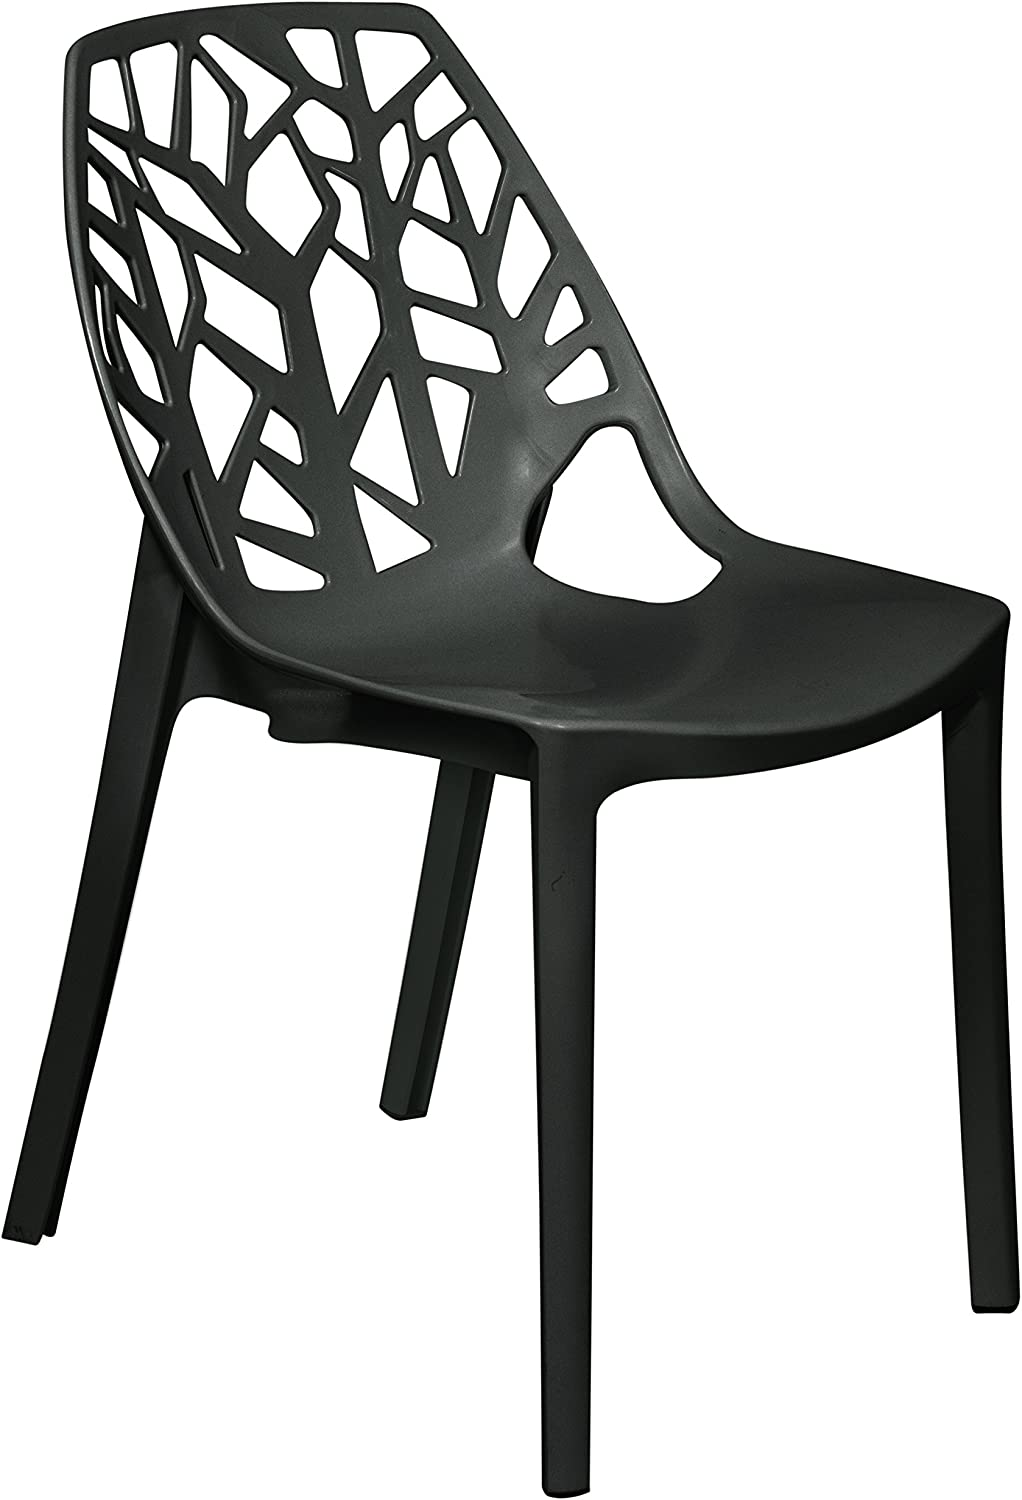 LeisureMod Caswell Cut-Out Tree Design Modern Dining Chairs Solid Black